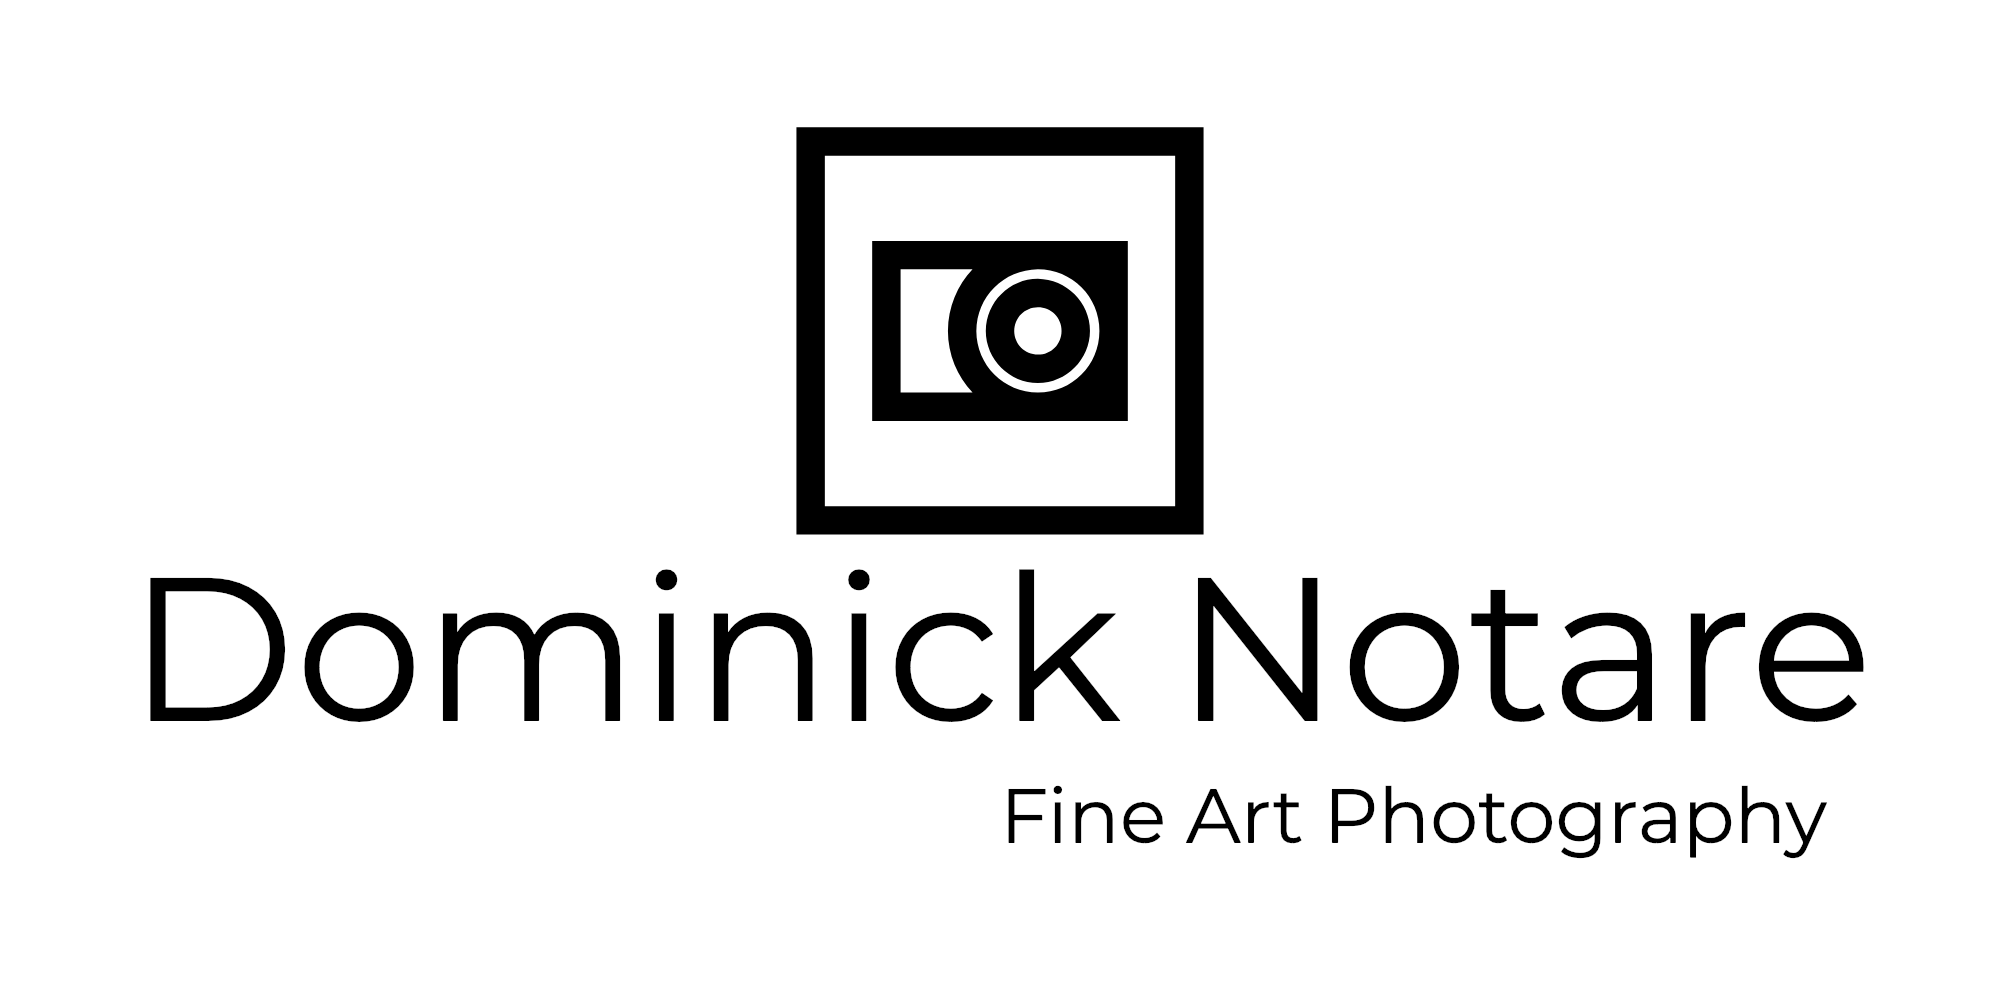 Dominick Notare-logo (1).png